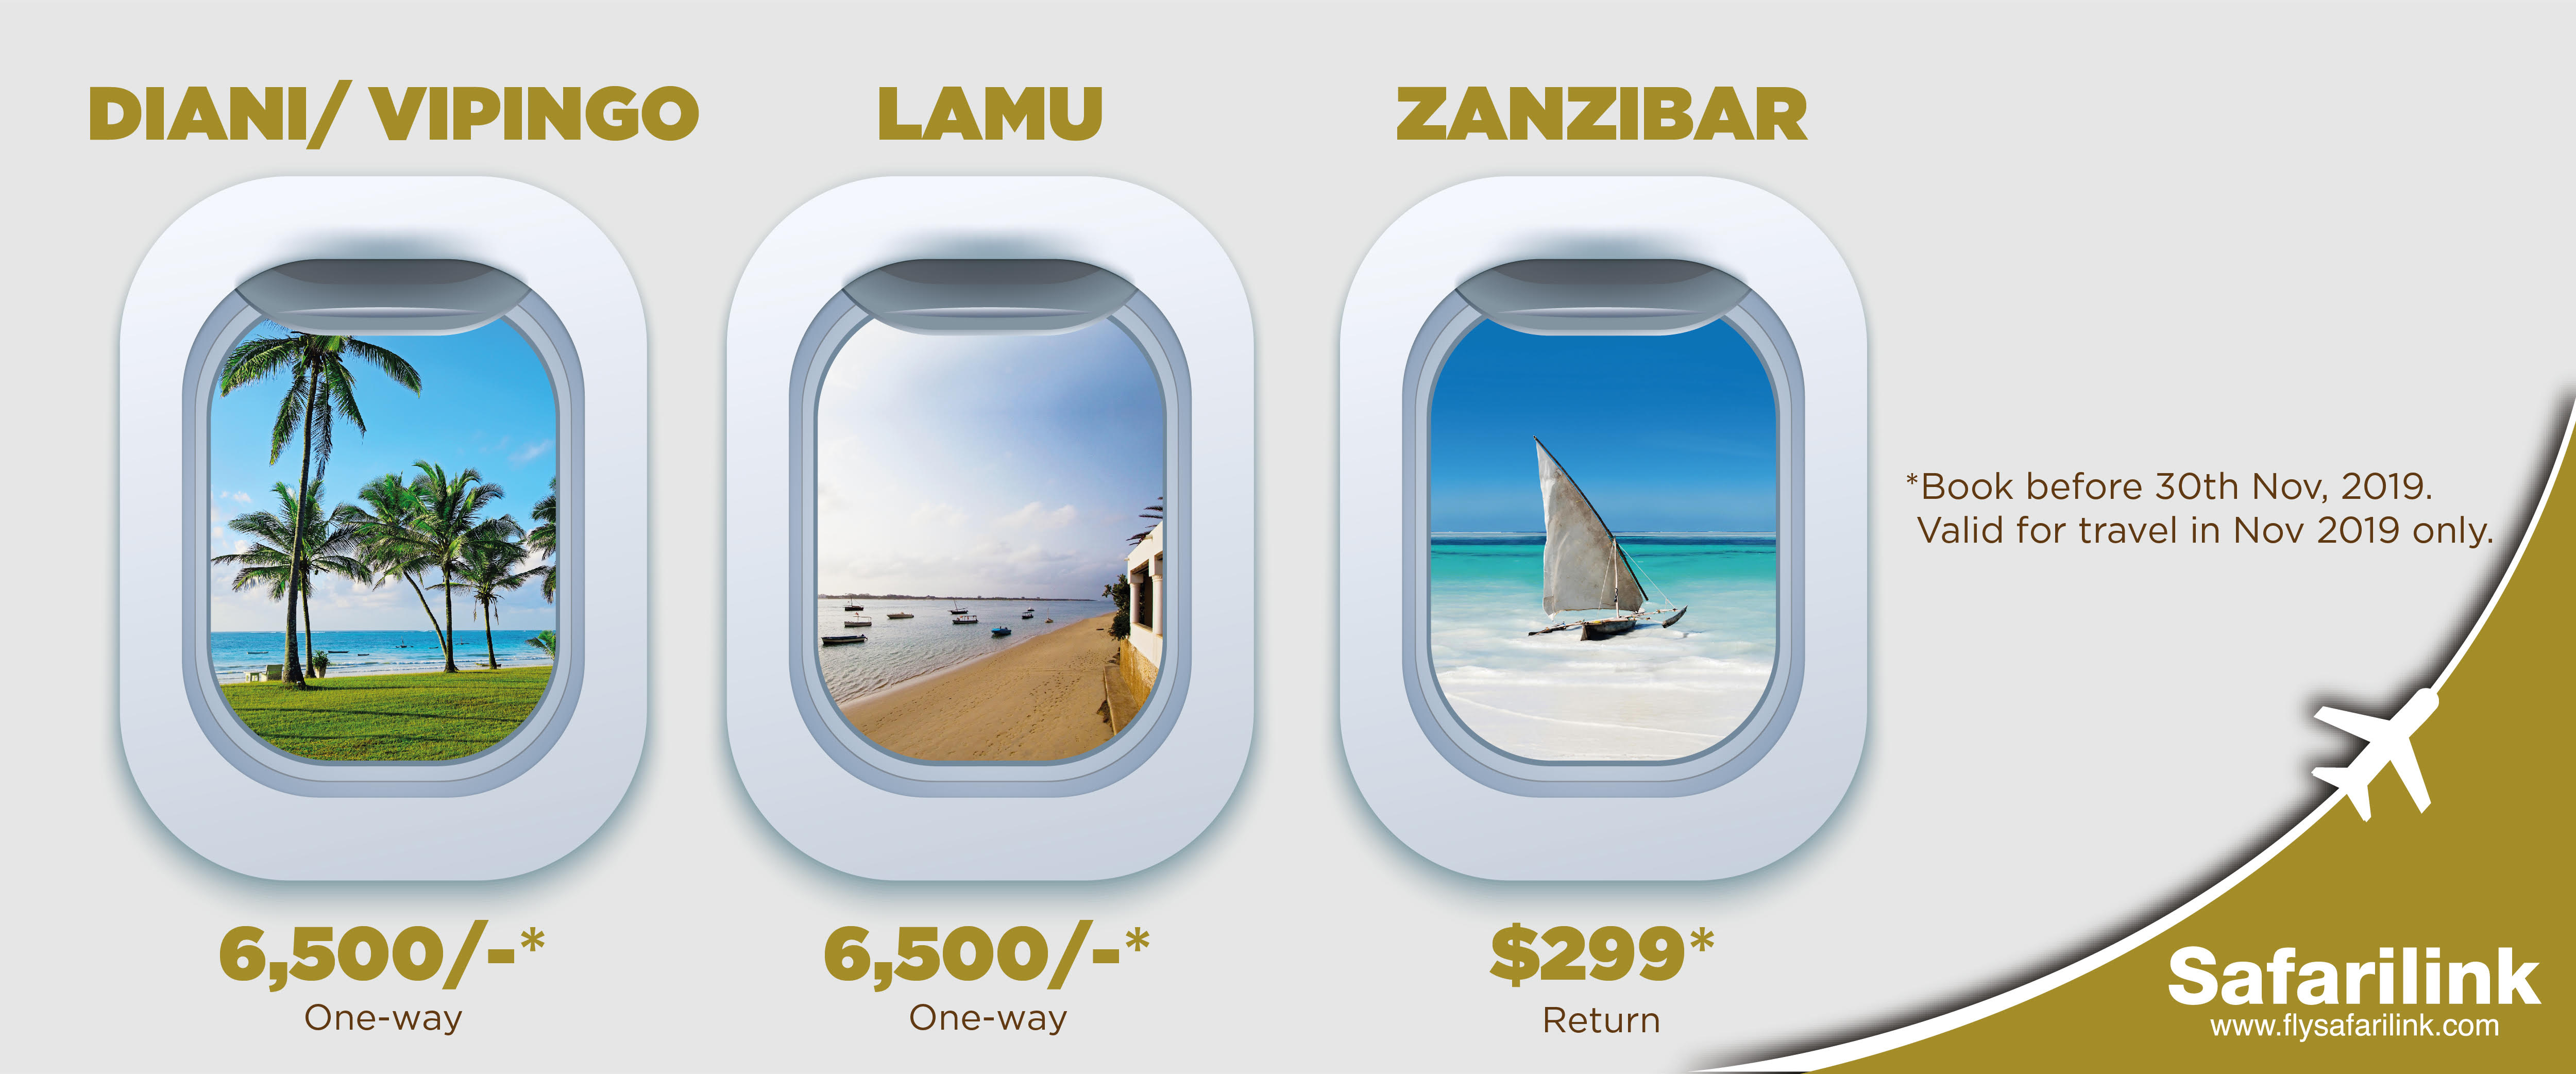 Enjoy a direct flight to the best Swahili beaches